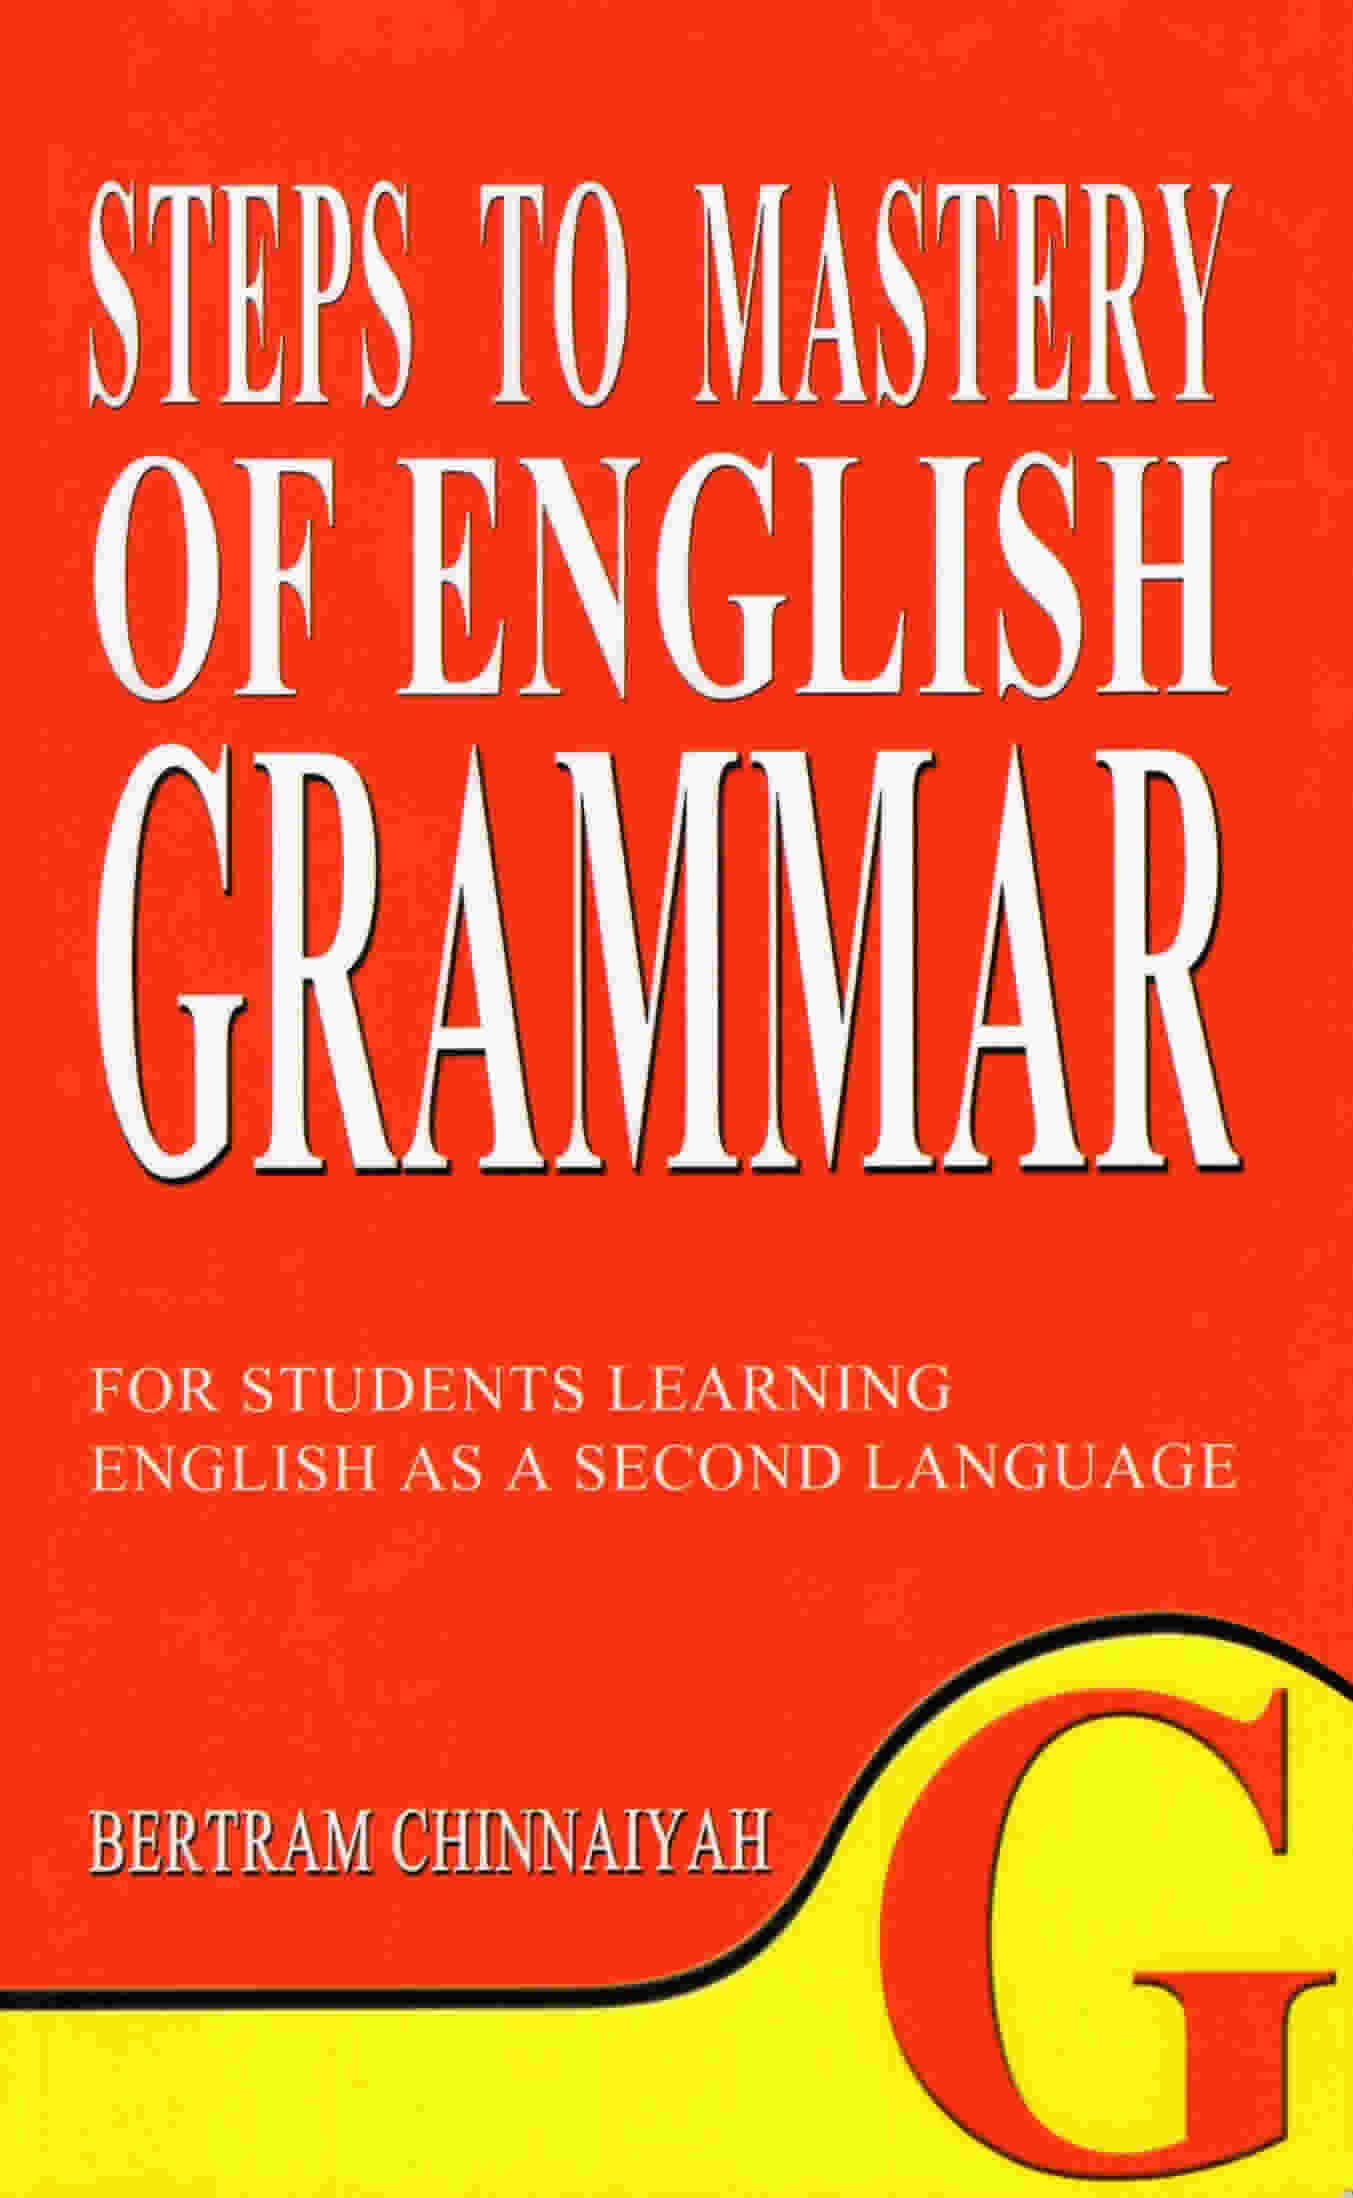 Steps to Master English Grammar